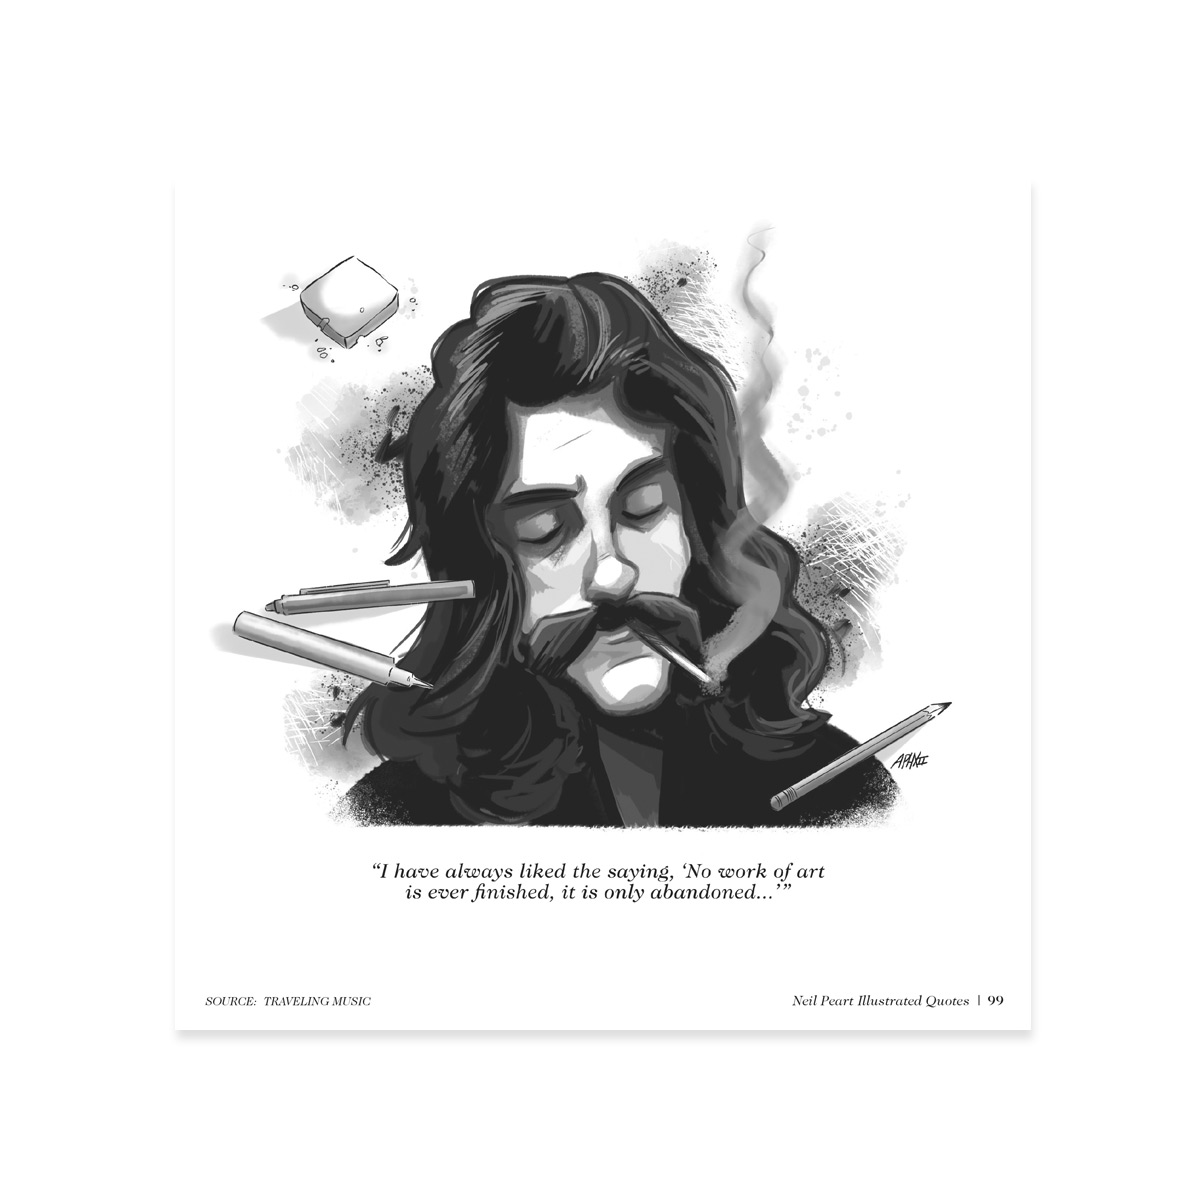 Neil Peart - The Illustrated Quotes Book